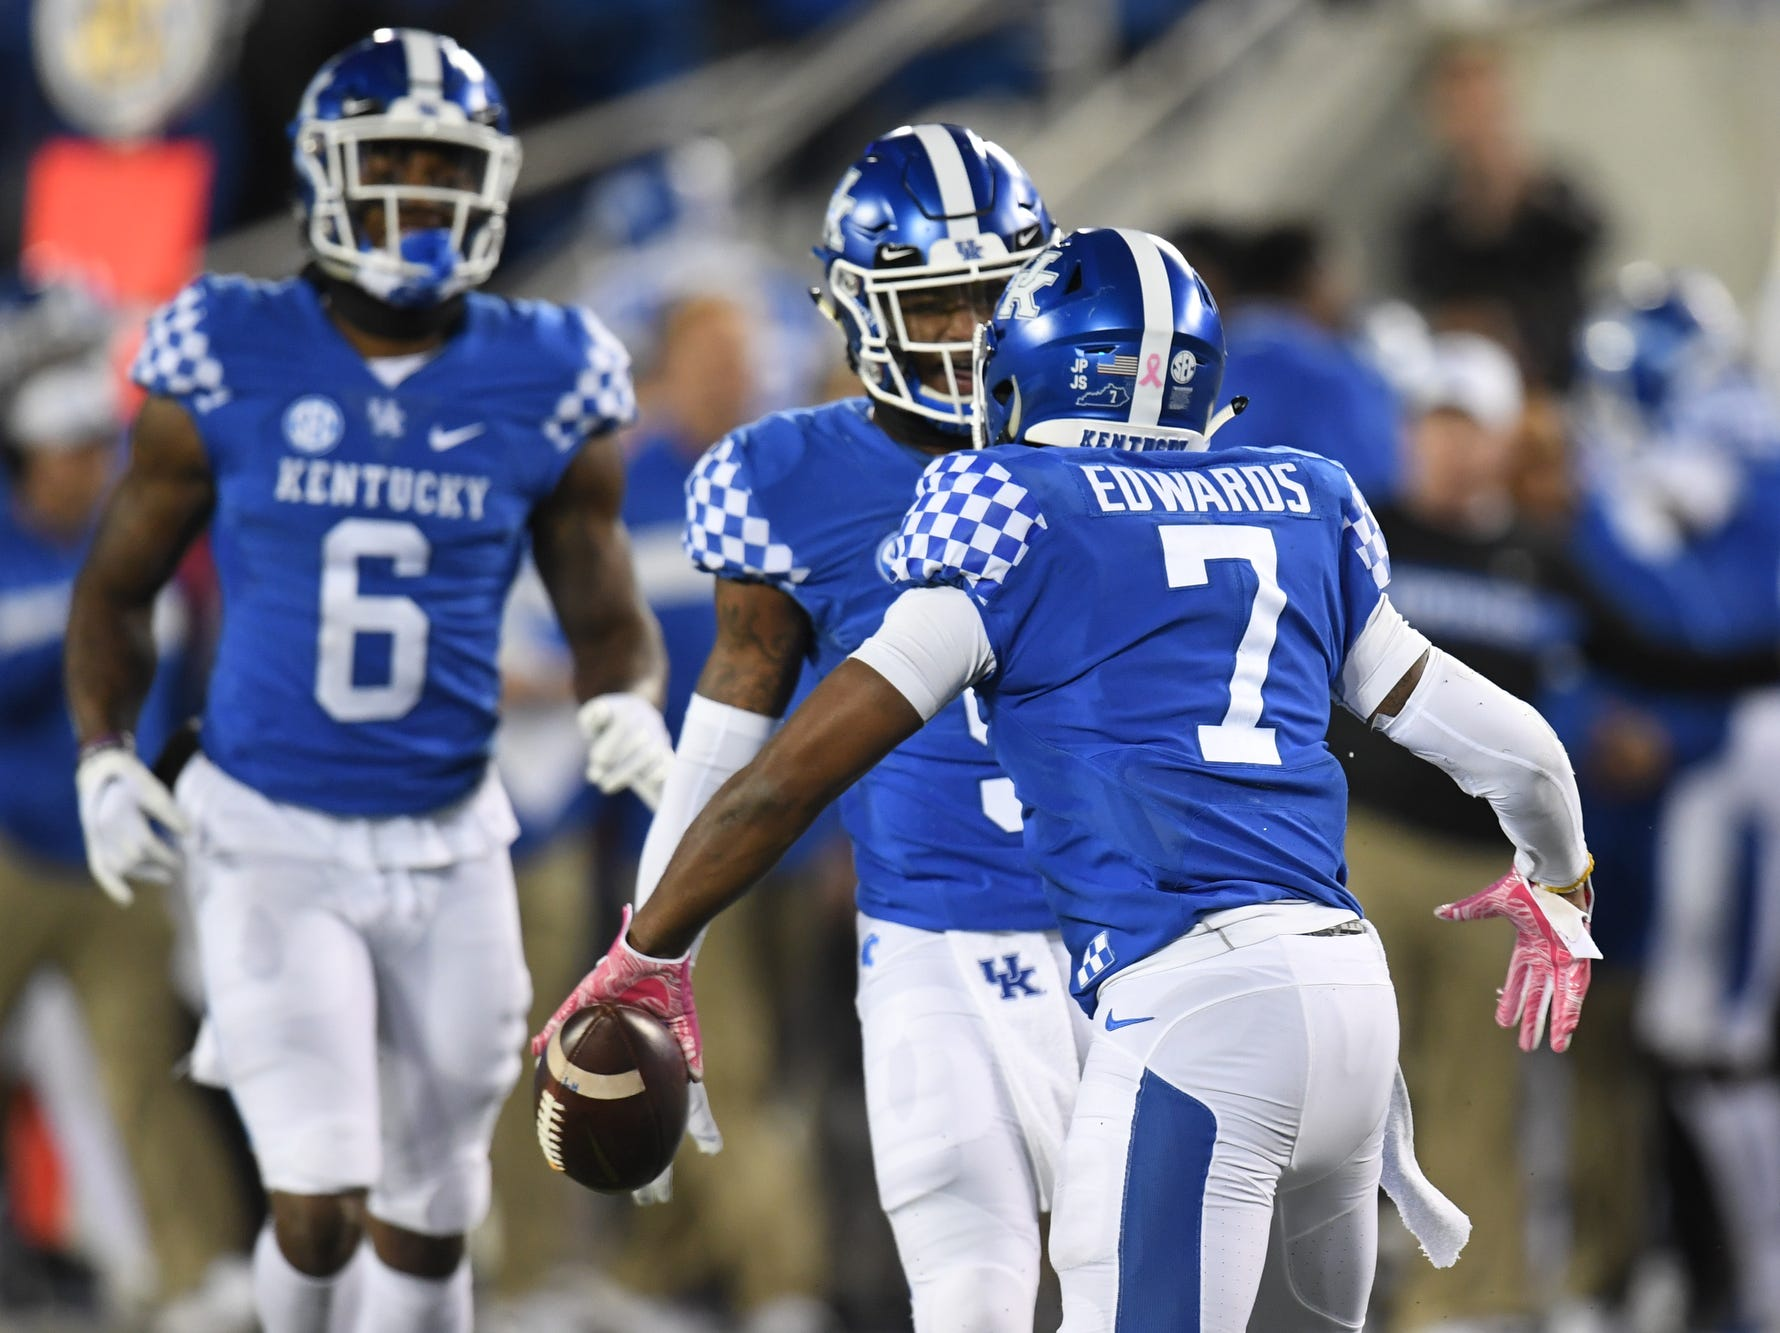 UK SS Mike Edwards celebrates recovering a fumble during the University of Kentucky football game against Vanderbilt at Kroger Field in Lexington, Kentucky on Saturday, October 20, 2018.